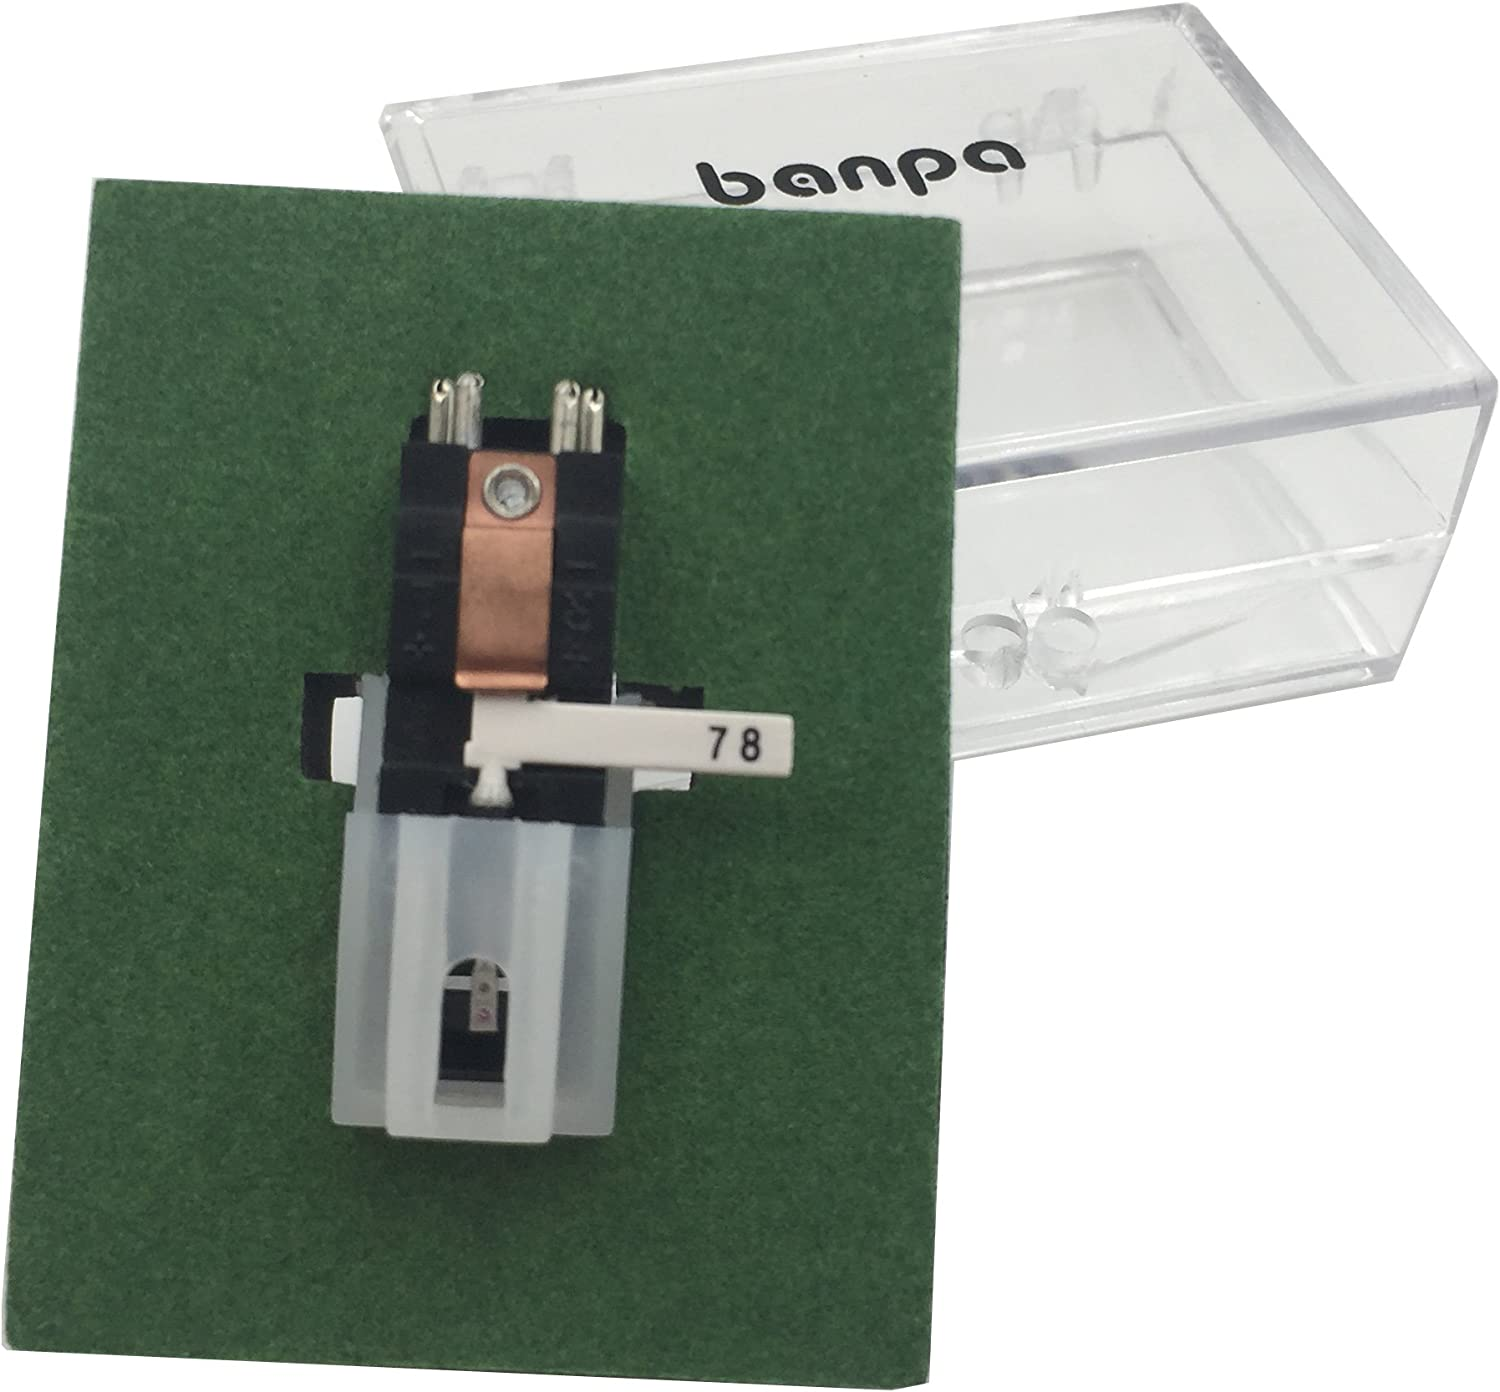 banpa Turntable Cartridge Replacement BP2ATC - with Two Side Red and Blue Diamond Tip for Vinyl LP/78 RPM Record Player